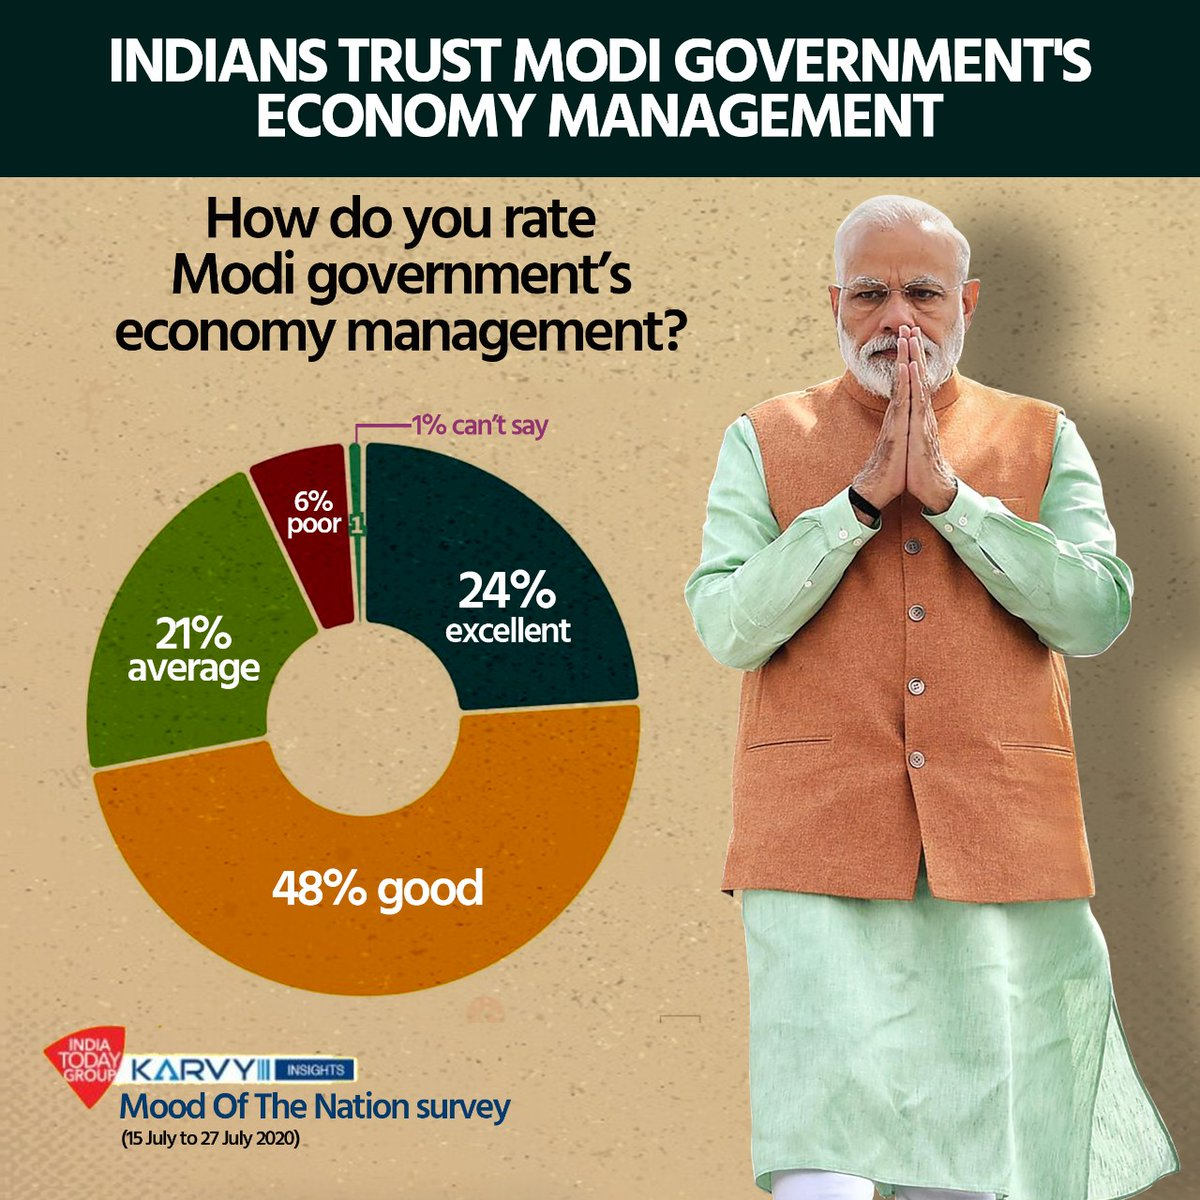 Indians trust Modi government's economy management. https://t.co/yI2nyRYqW9